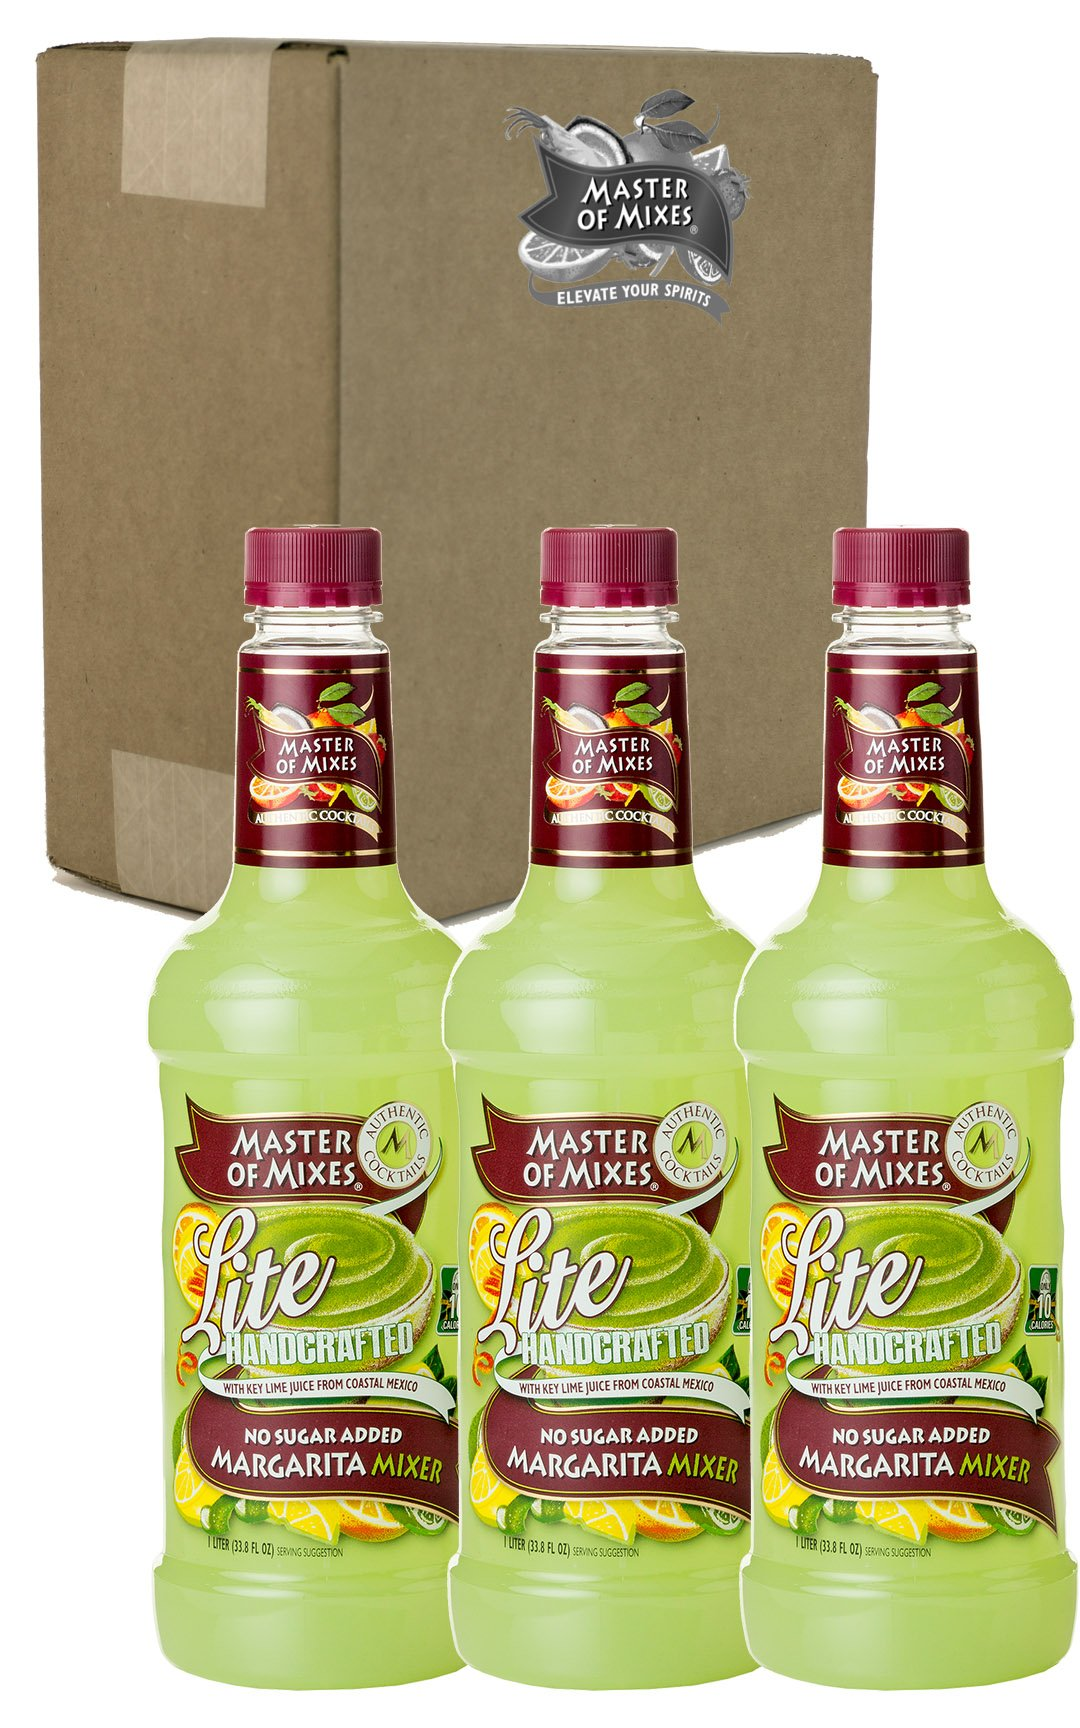 Master of Mixes Margarita Lite Drink Mix, Ready To Use, 1 Liter Bottle (33.8 Fl Oz), Pack of 3 by Master of Mixes